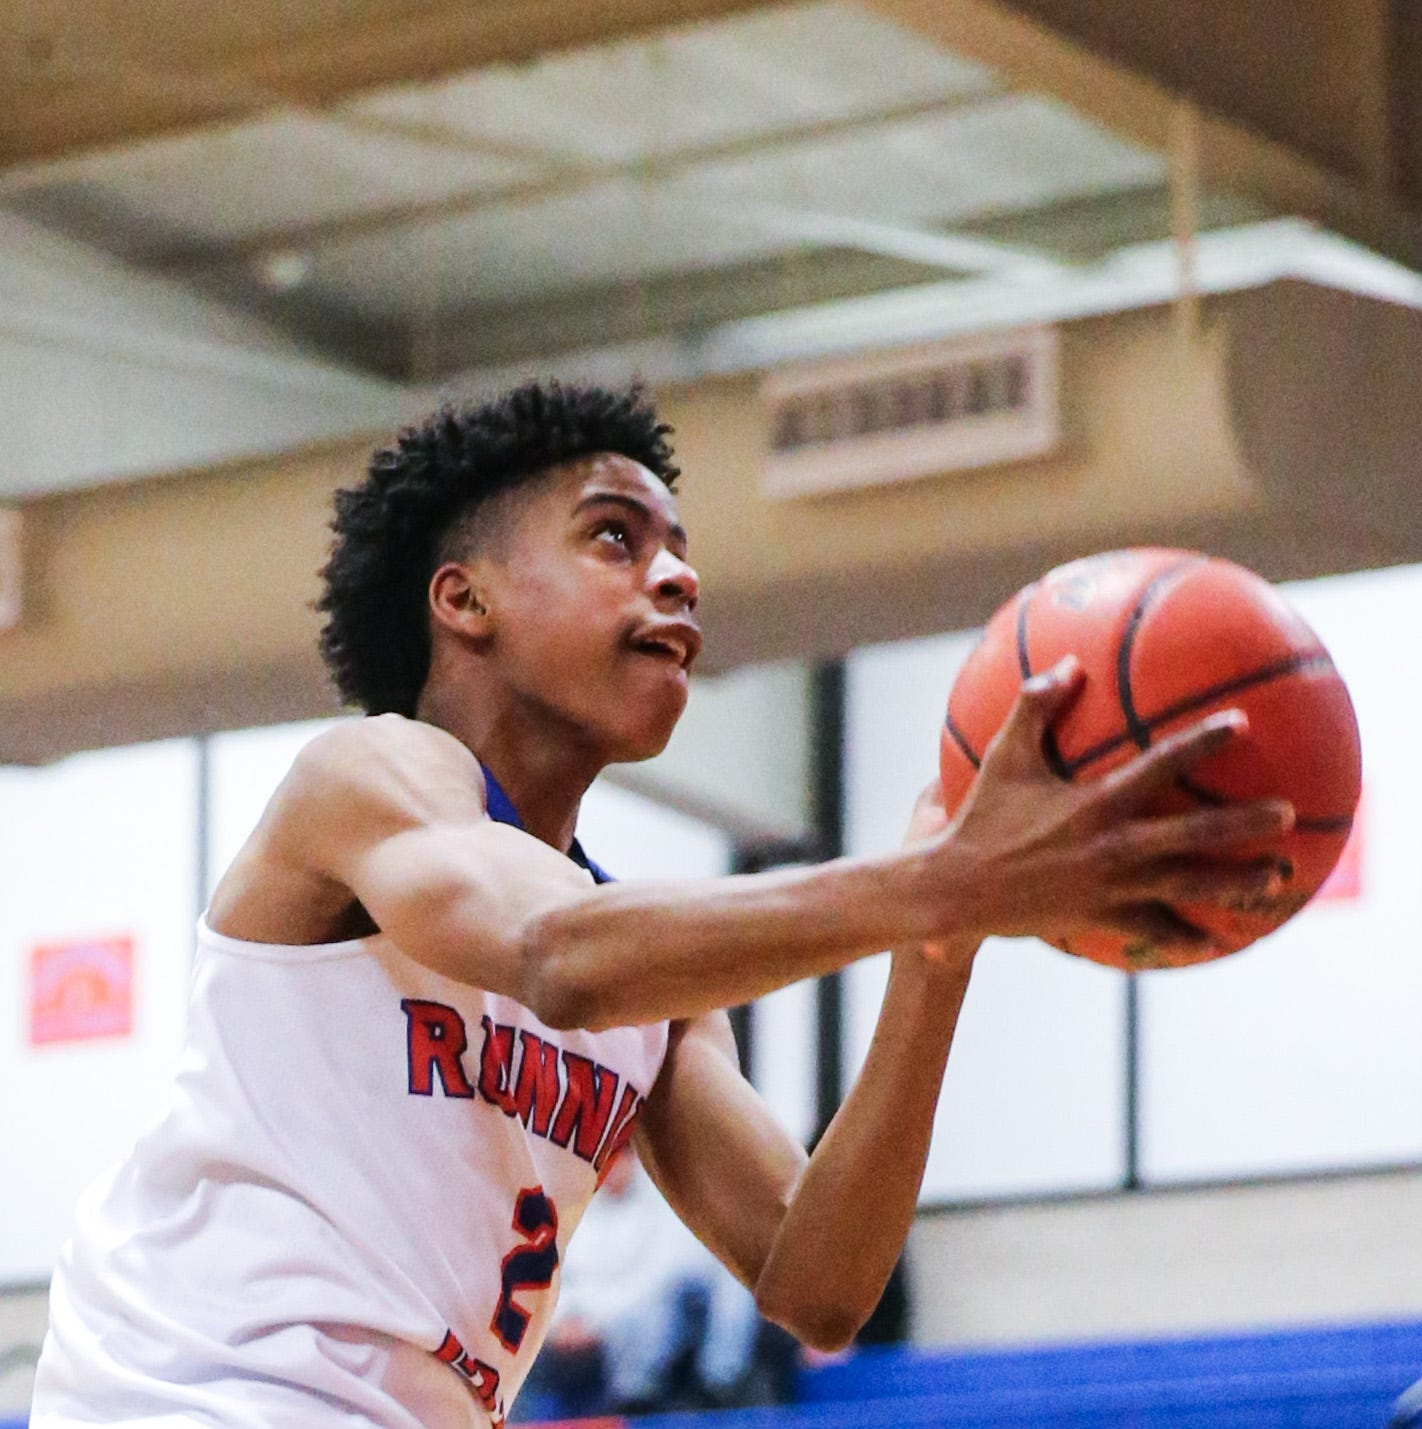 PLAYOFF BASKETBALL ROUNDUP: San Angelo Central boys fall to No. 3 North Crowley